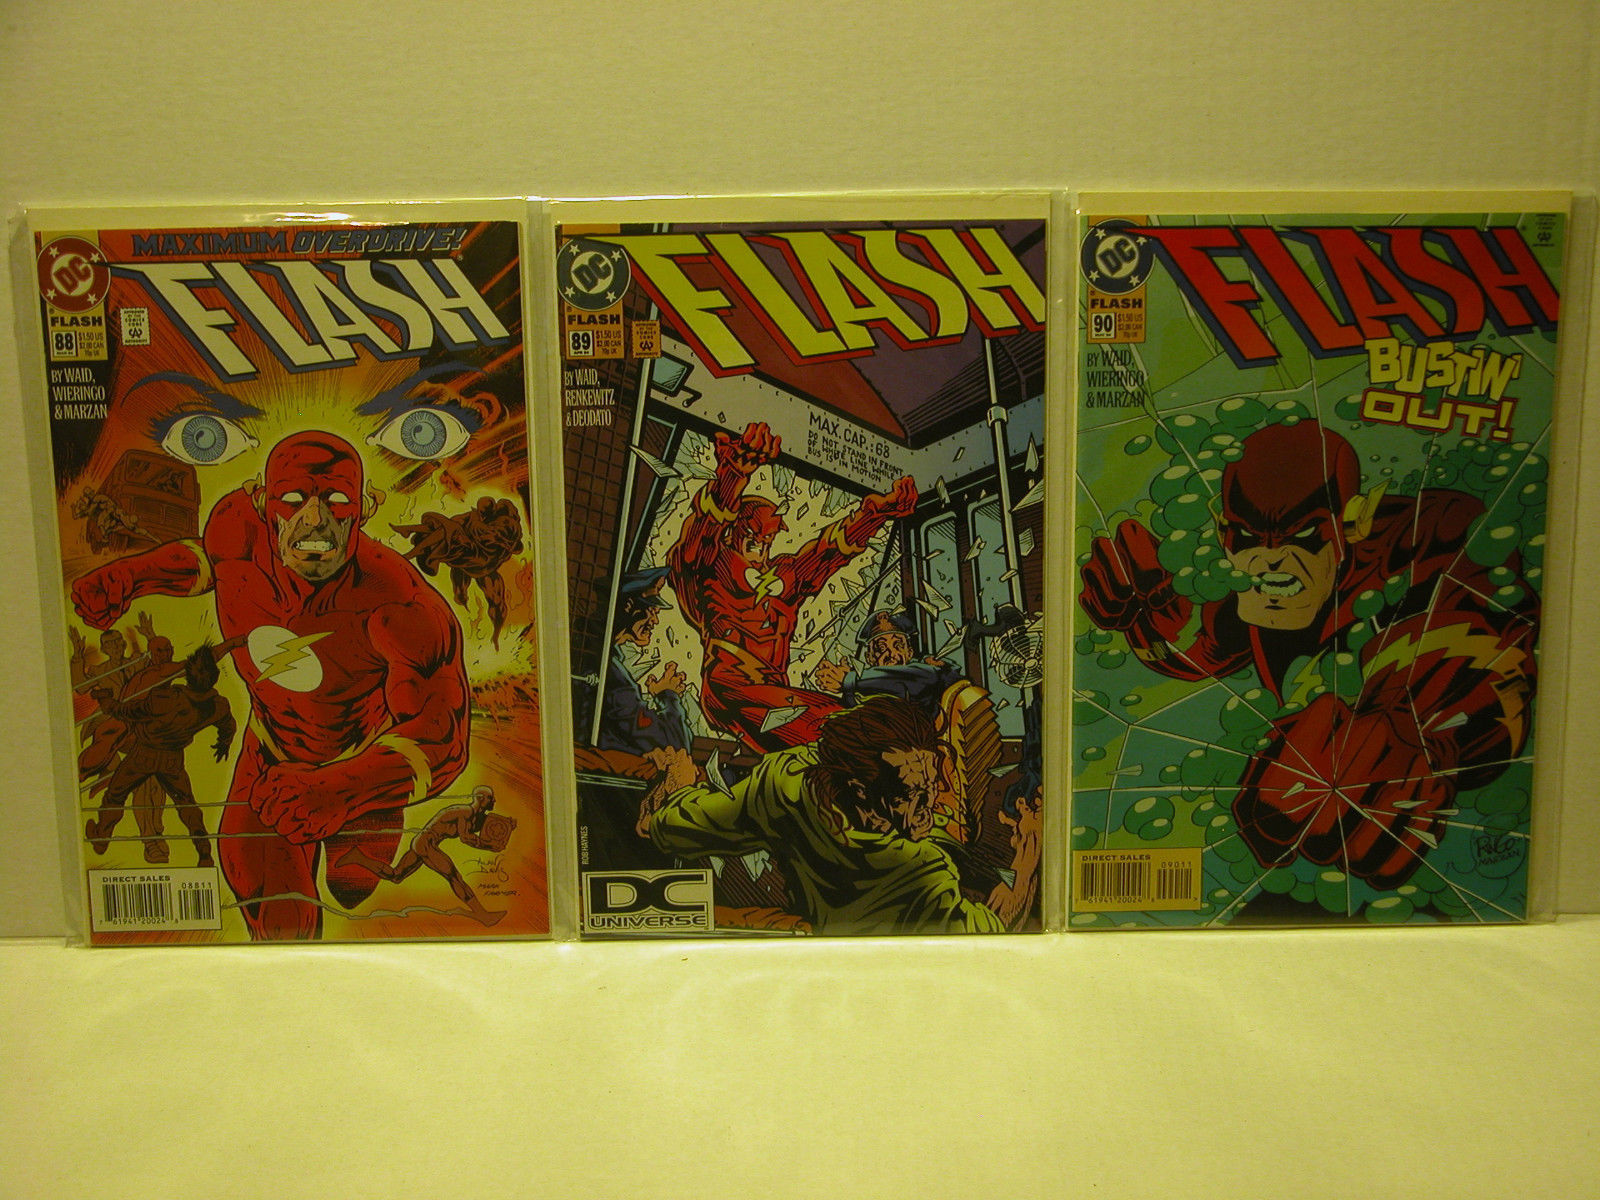 "THE FLASH - #83 - 85 ""RAZER"" + #88 - 90 DC COMICS - FREE SHIPPING"